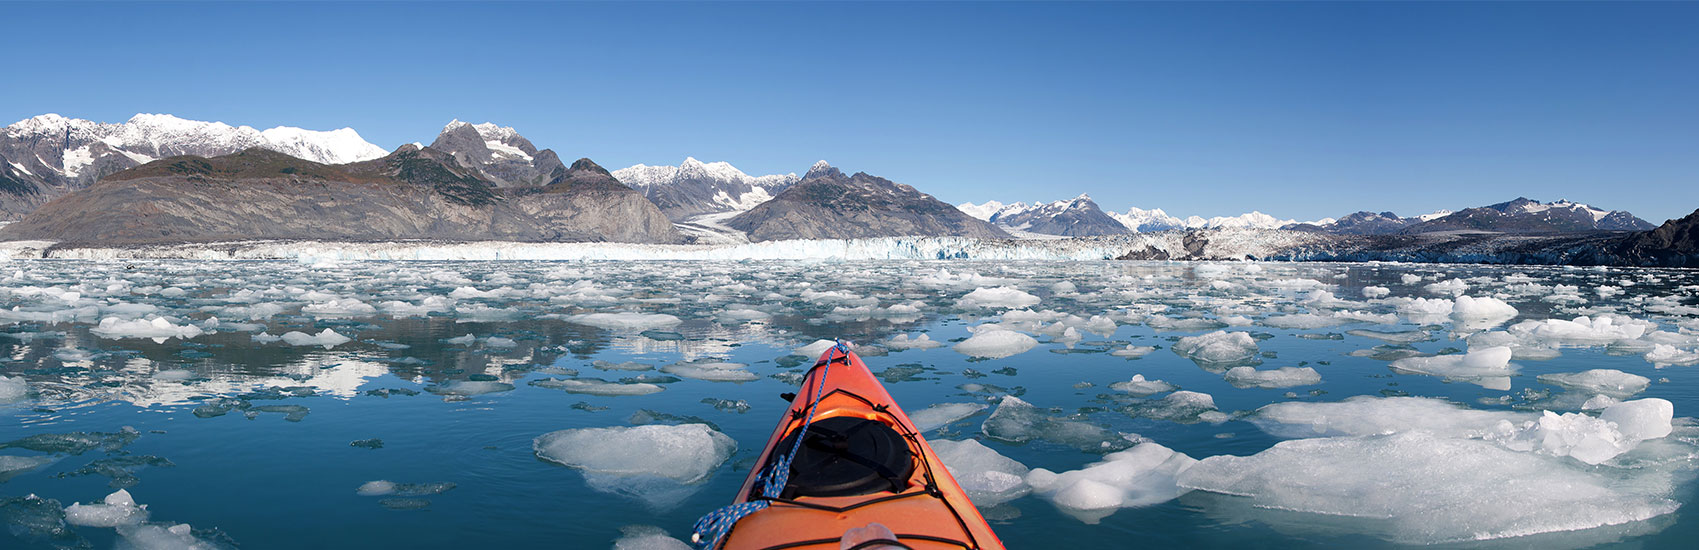 Discover Alaska with Holland America Cruise Line 2